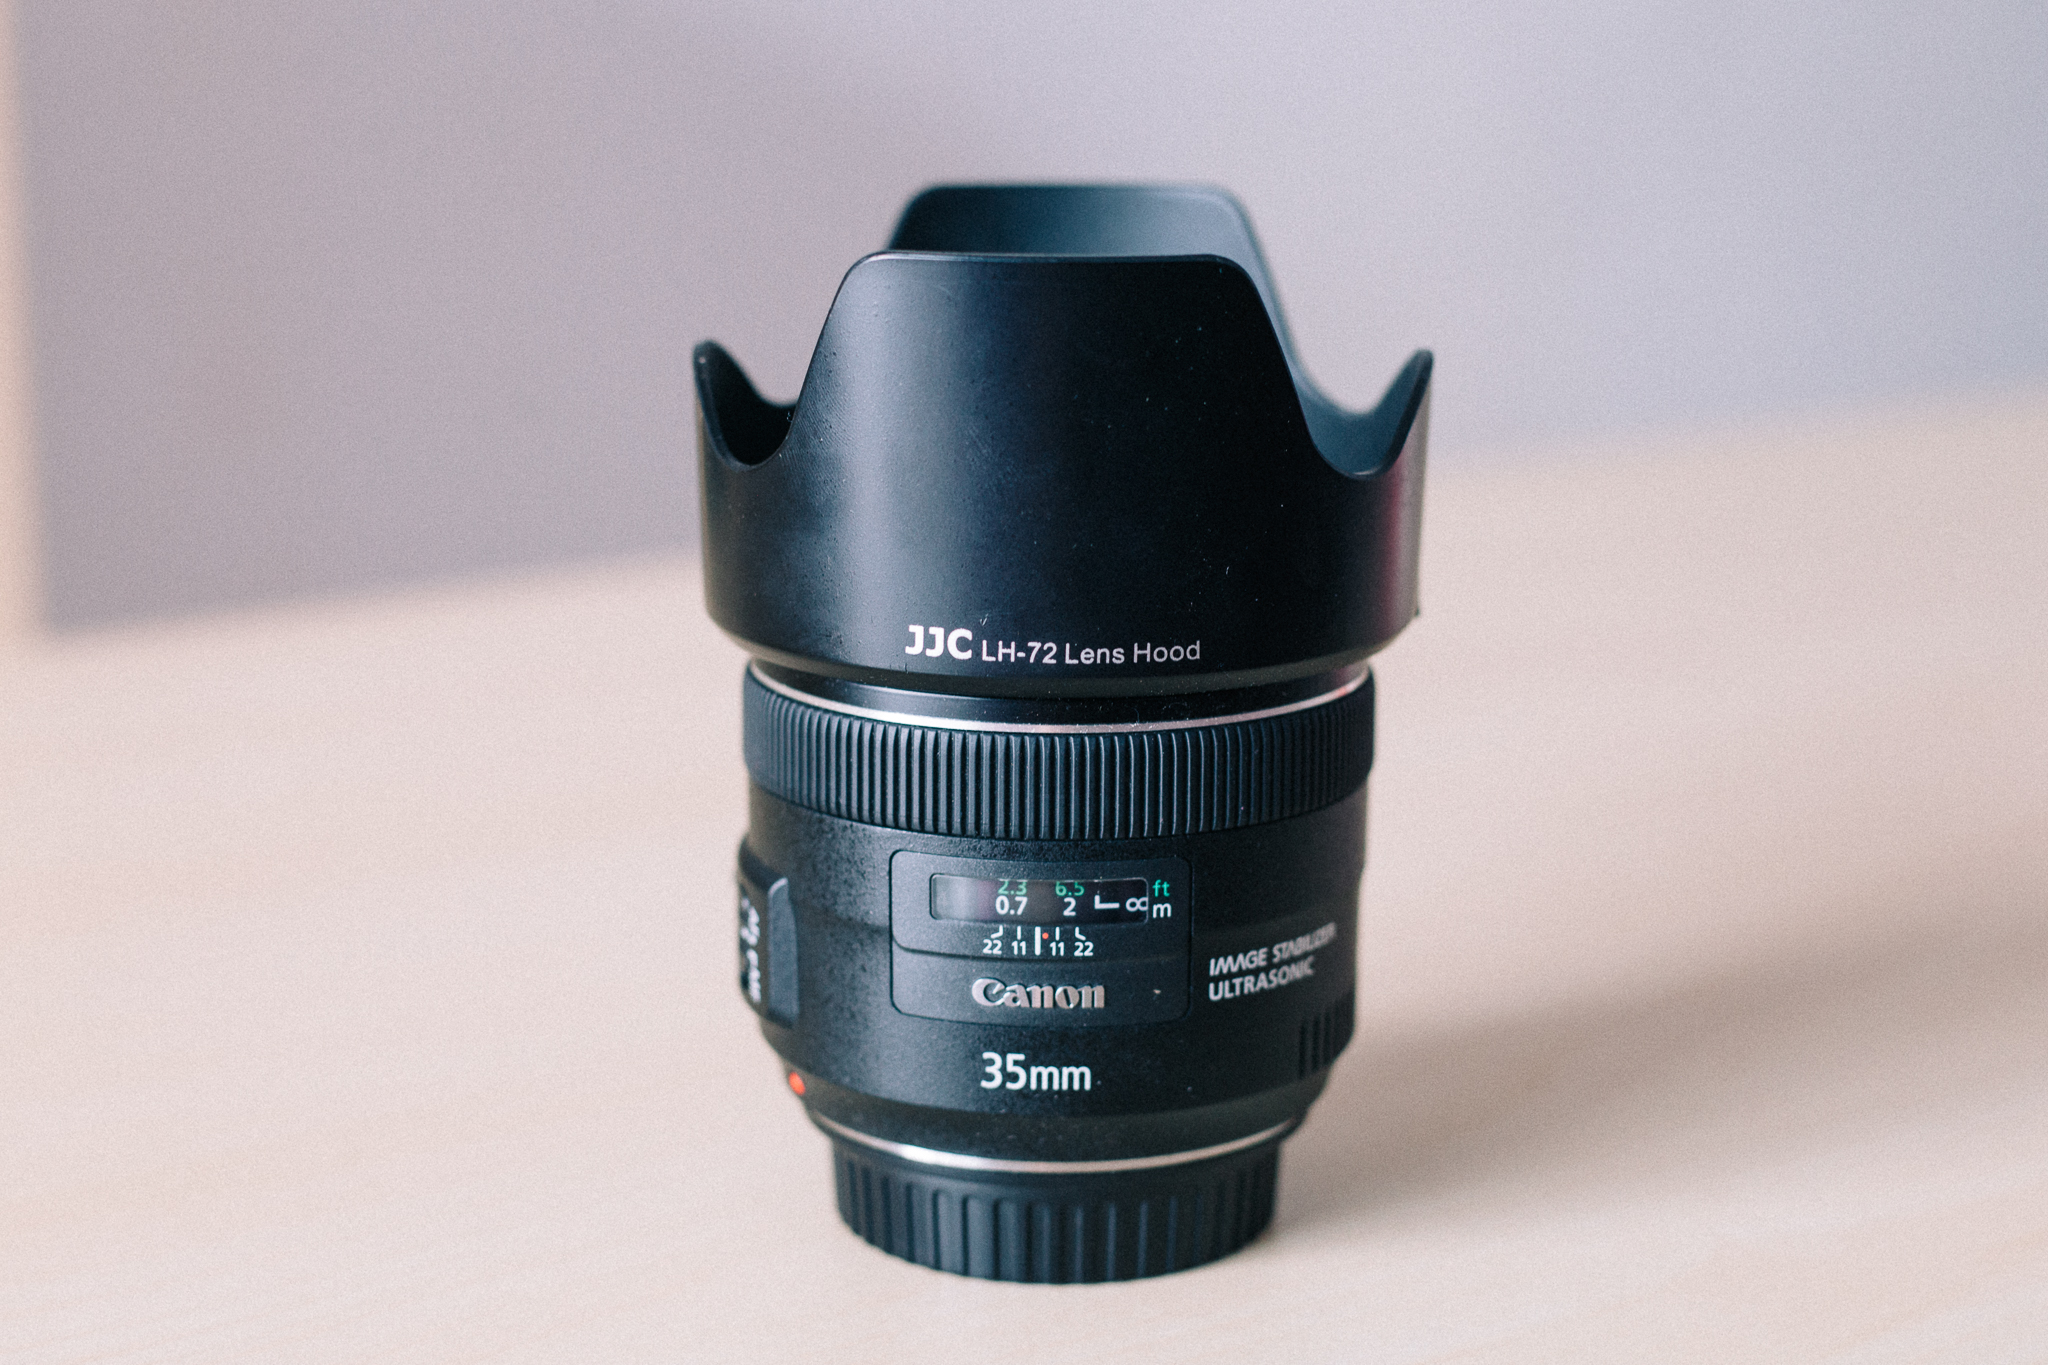 Is that little piece of plastic to protect the front lens worth 50€ extra if it comes from Canon?